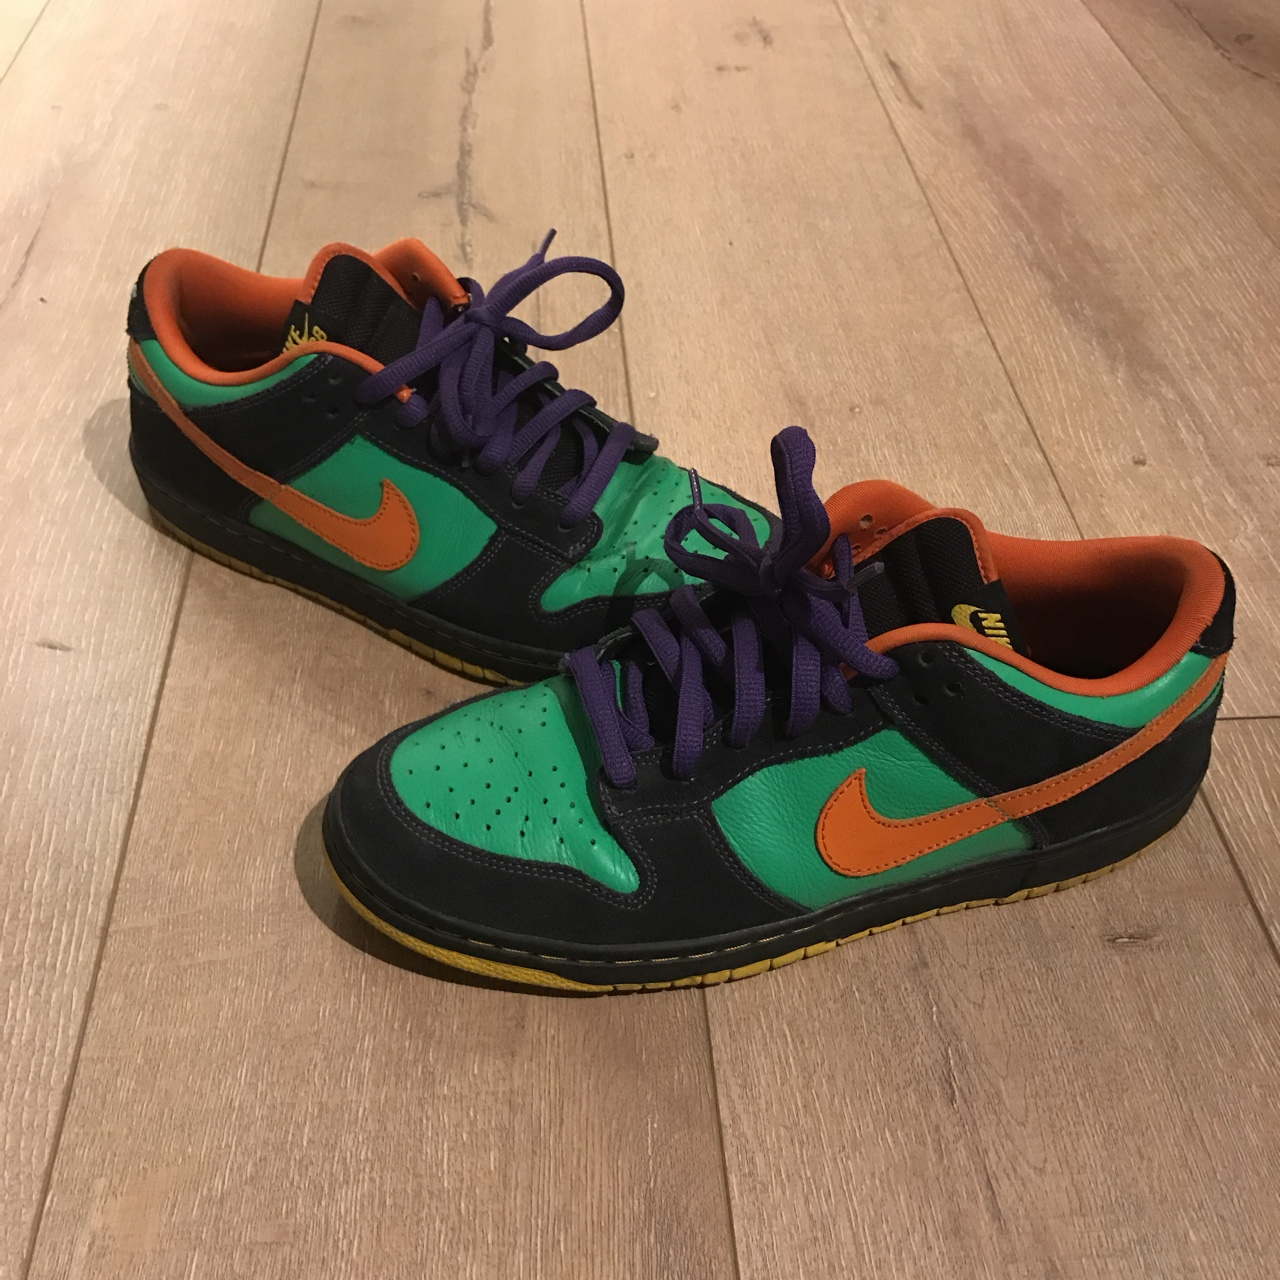 check out 71d64 ad2e6 NIKE SB DUNK LOW 09' HALLOWEEN EDITION. GOOD ...